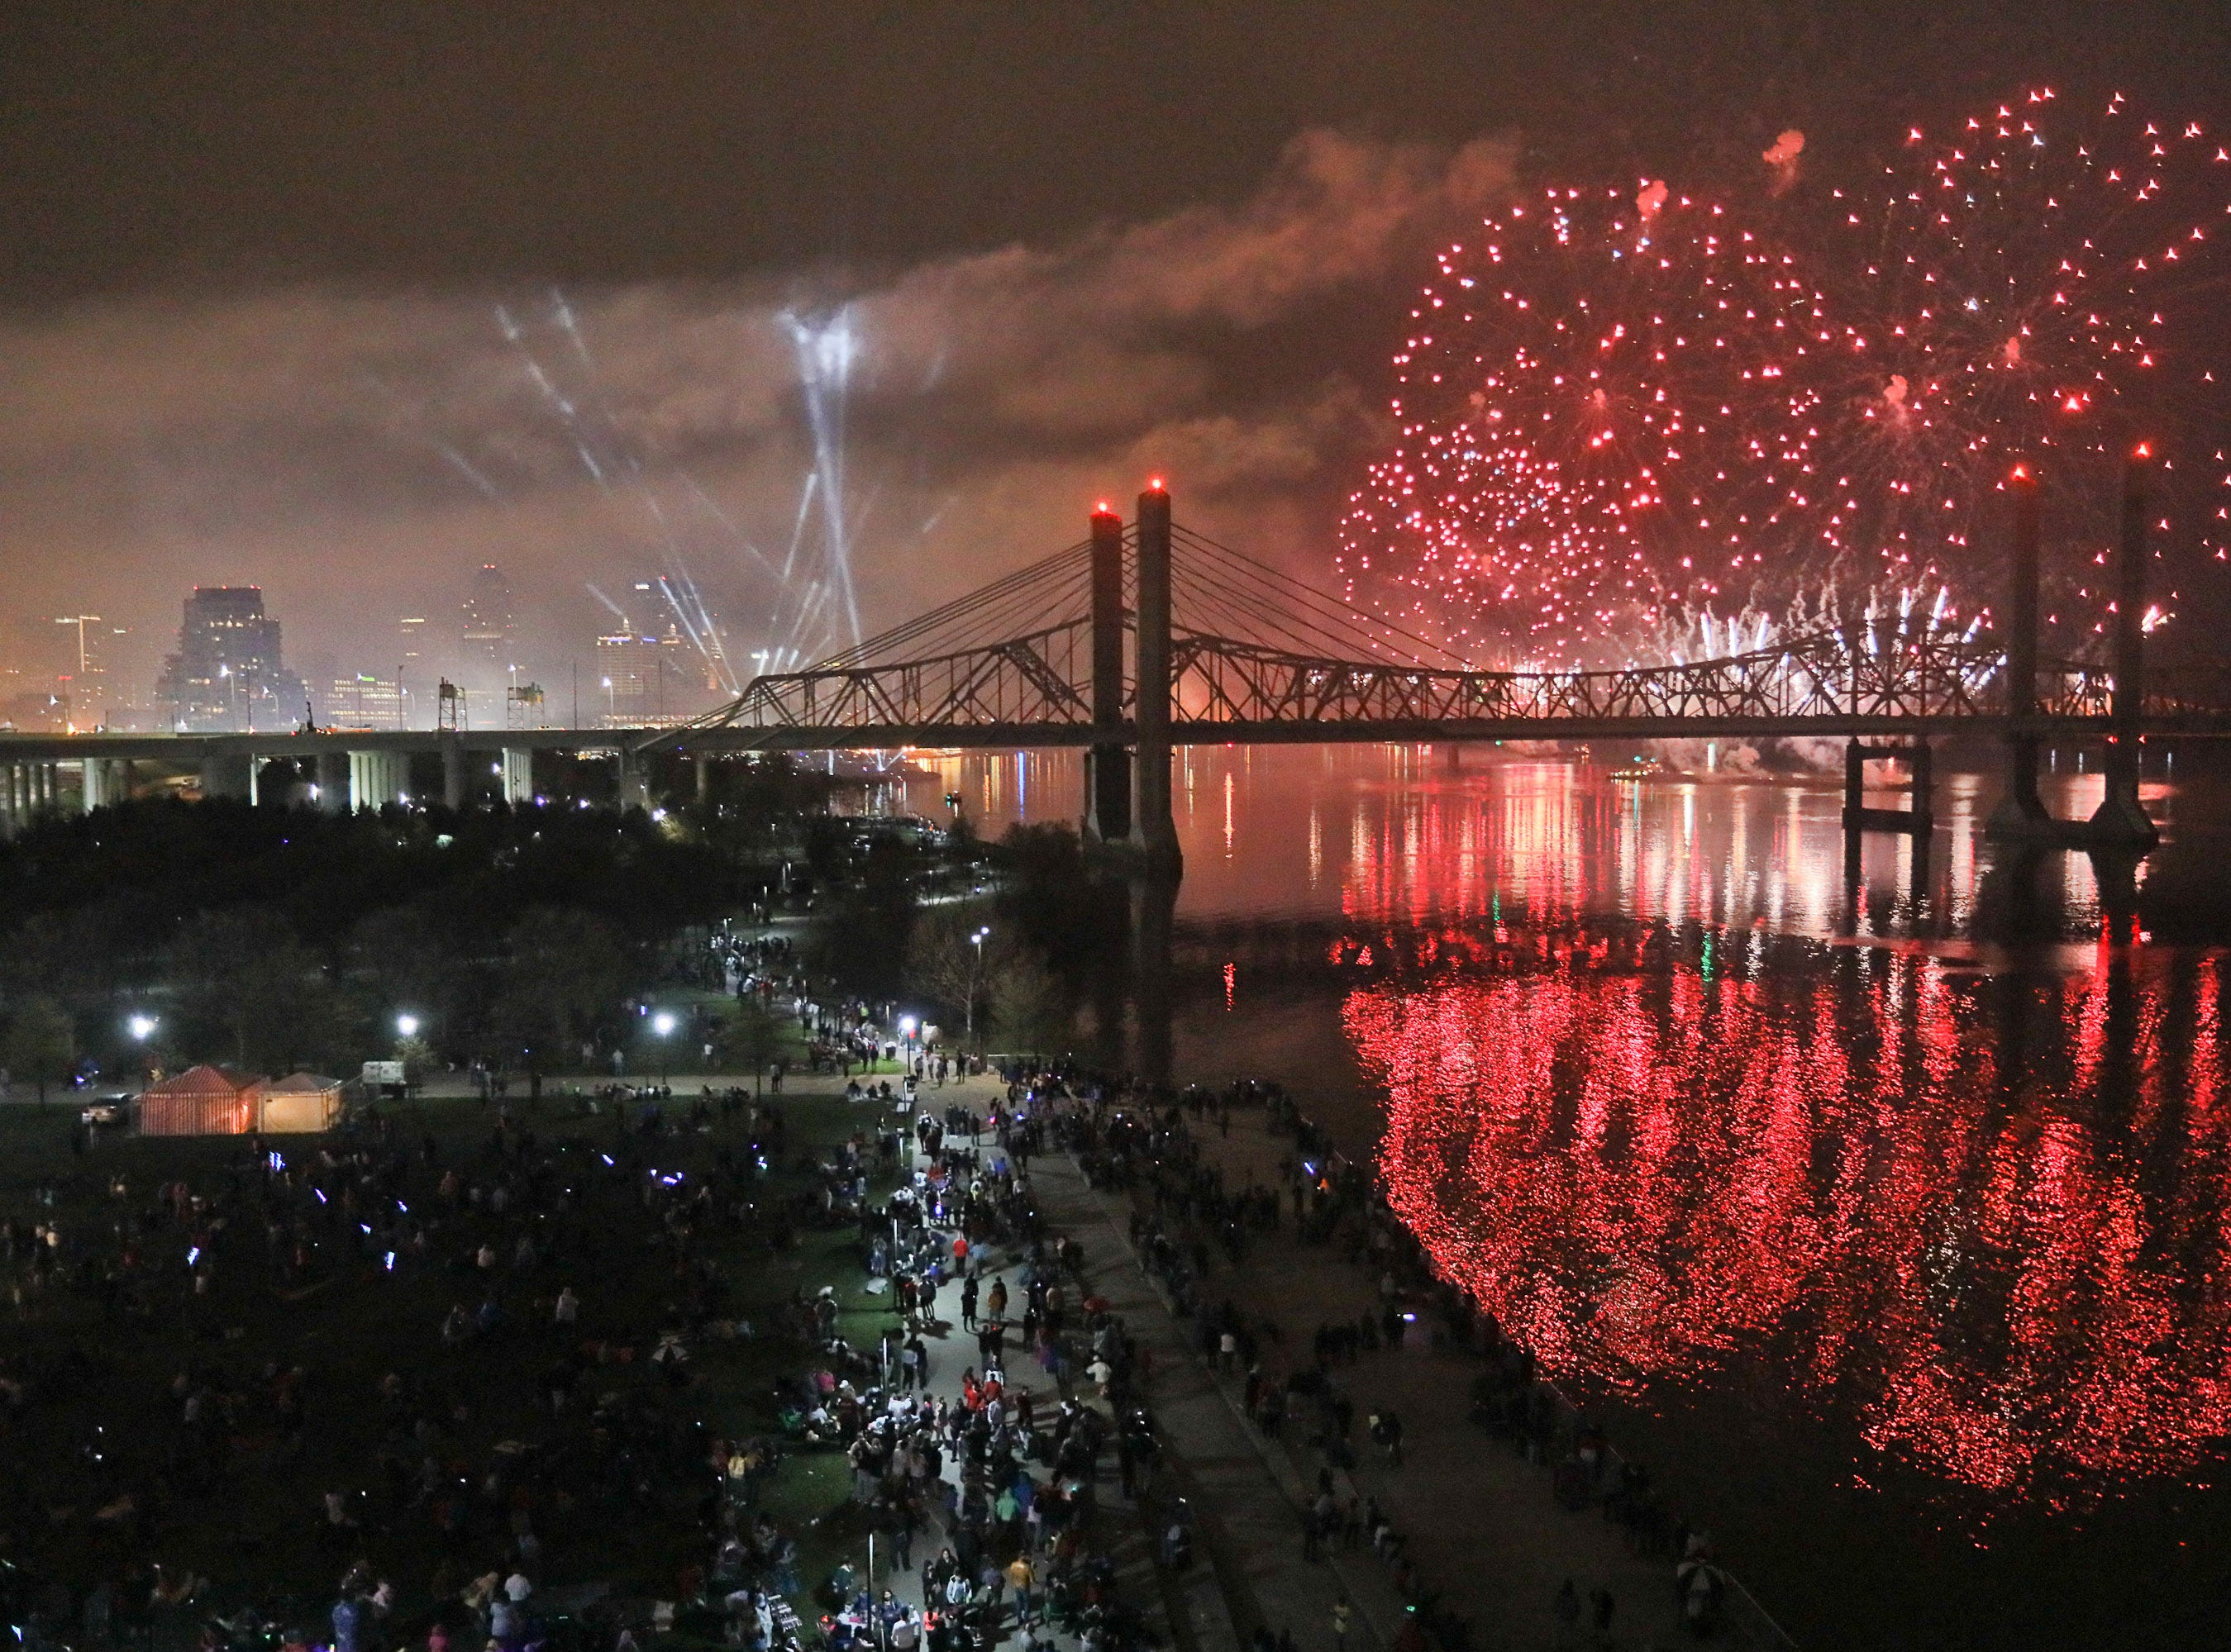 2019 Thunder Over Louisville from the Big 4 Bridge. Apr 13, 2019